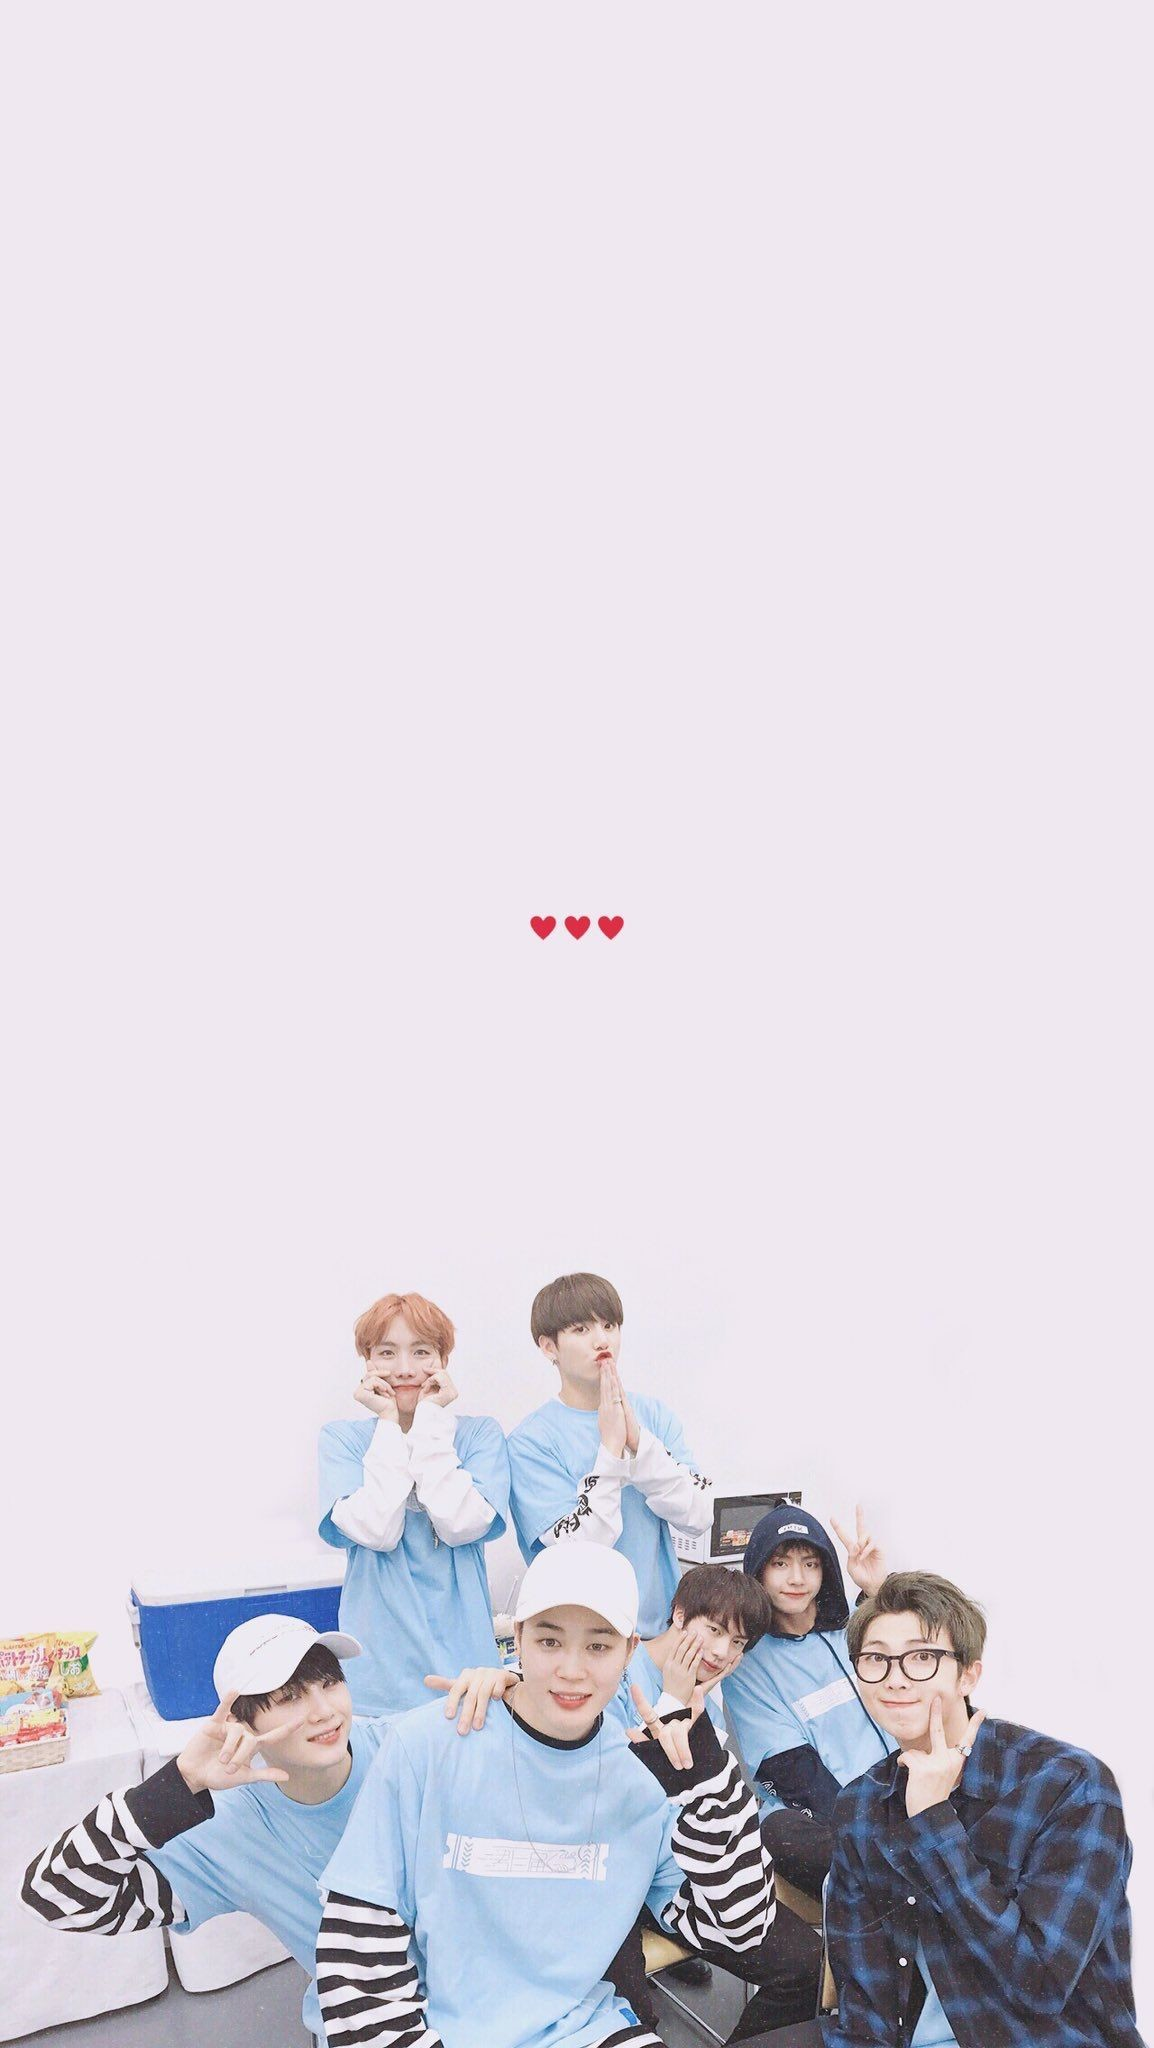 Bts Wallpaper Hd Aesthetic Bts Iphone Lockscreen 26227 Hd Wallpaper Backgrounds Download